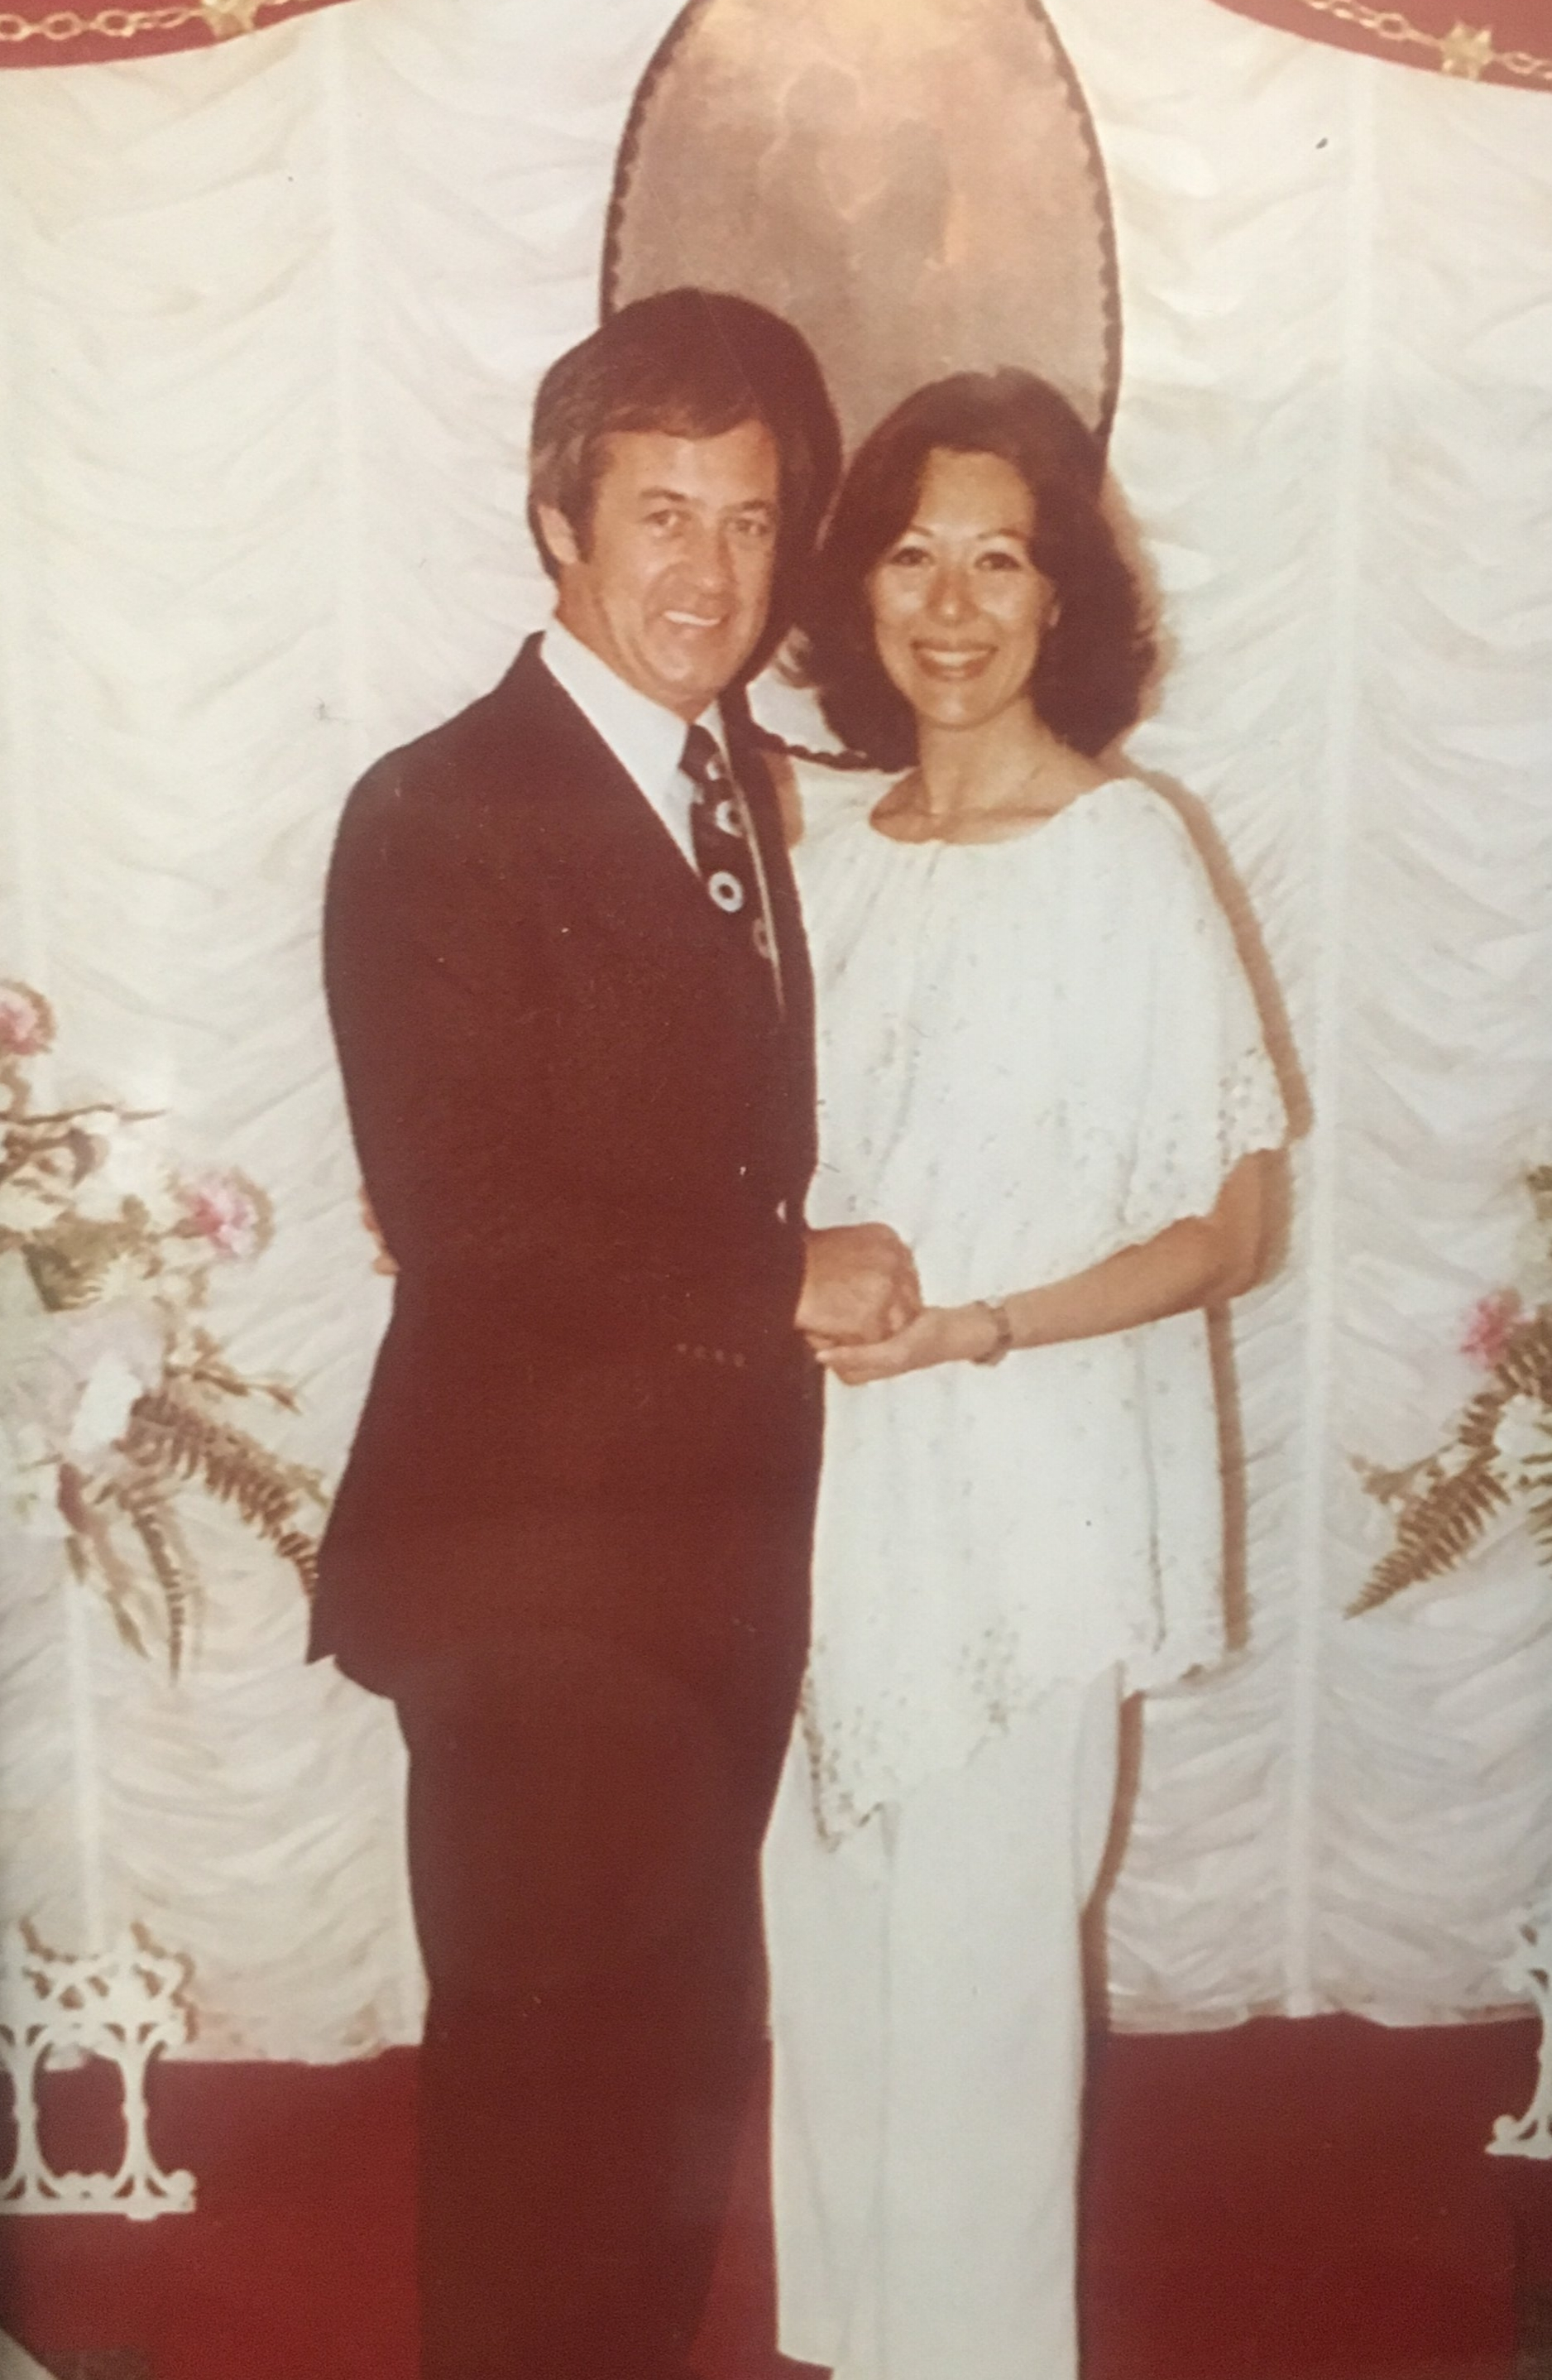 My parents. Just married. Aren't they so cute!?